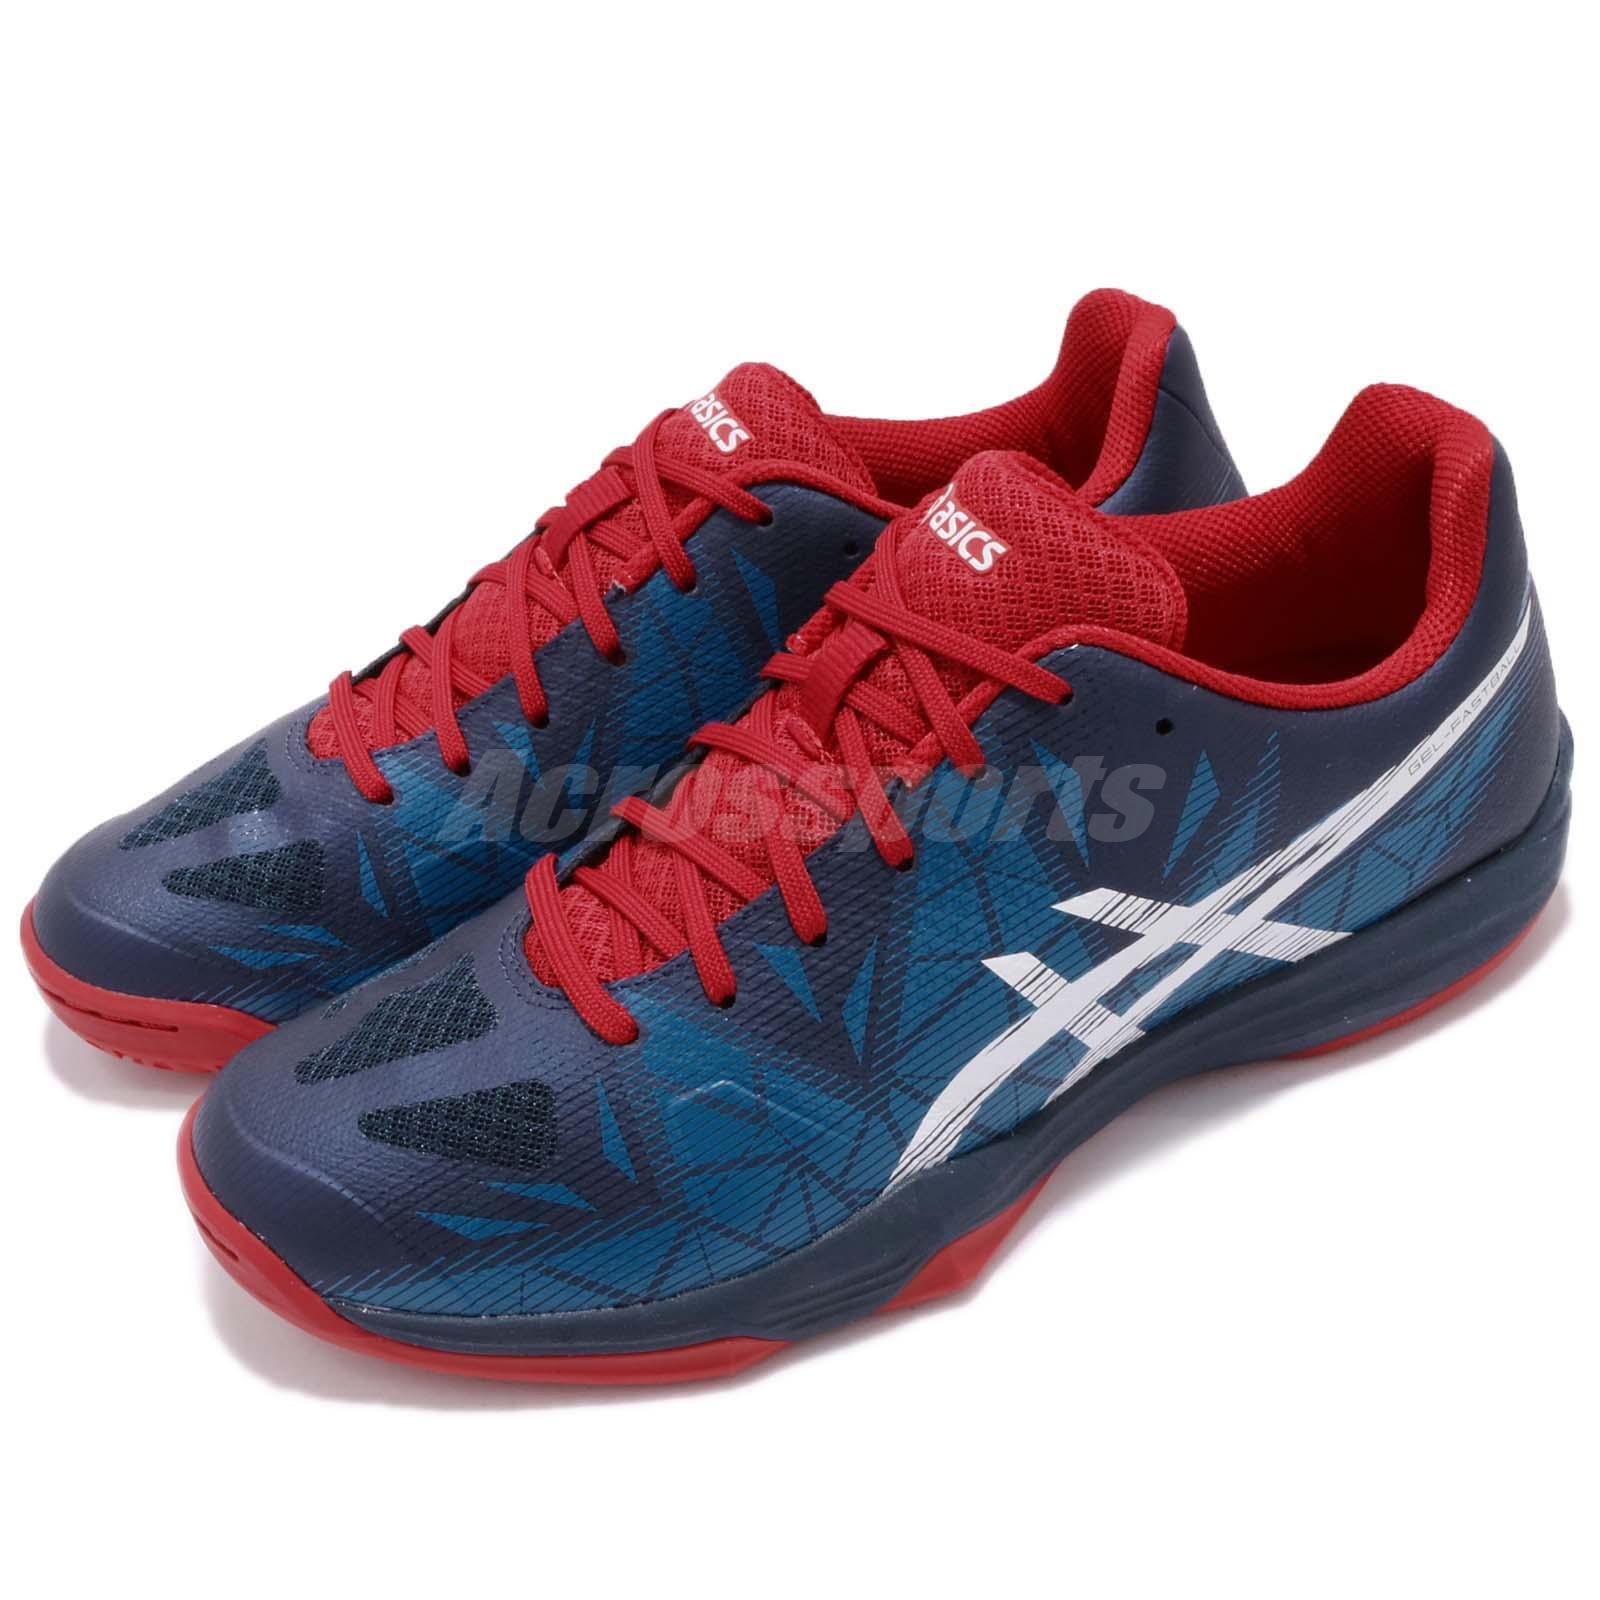 Asics Gel Fastball 3 Blue Red Handball Volleyball Badminton Shoes THH546 5001